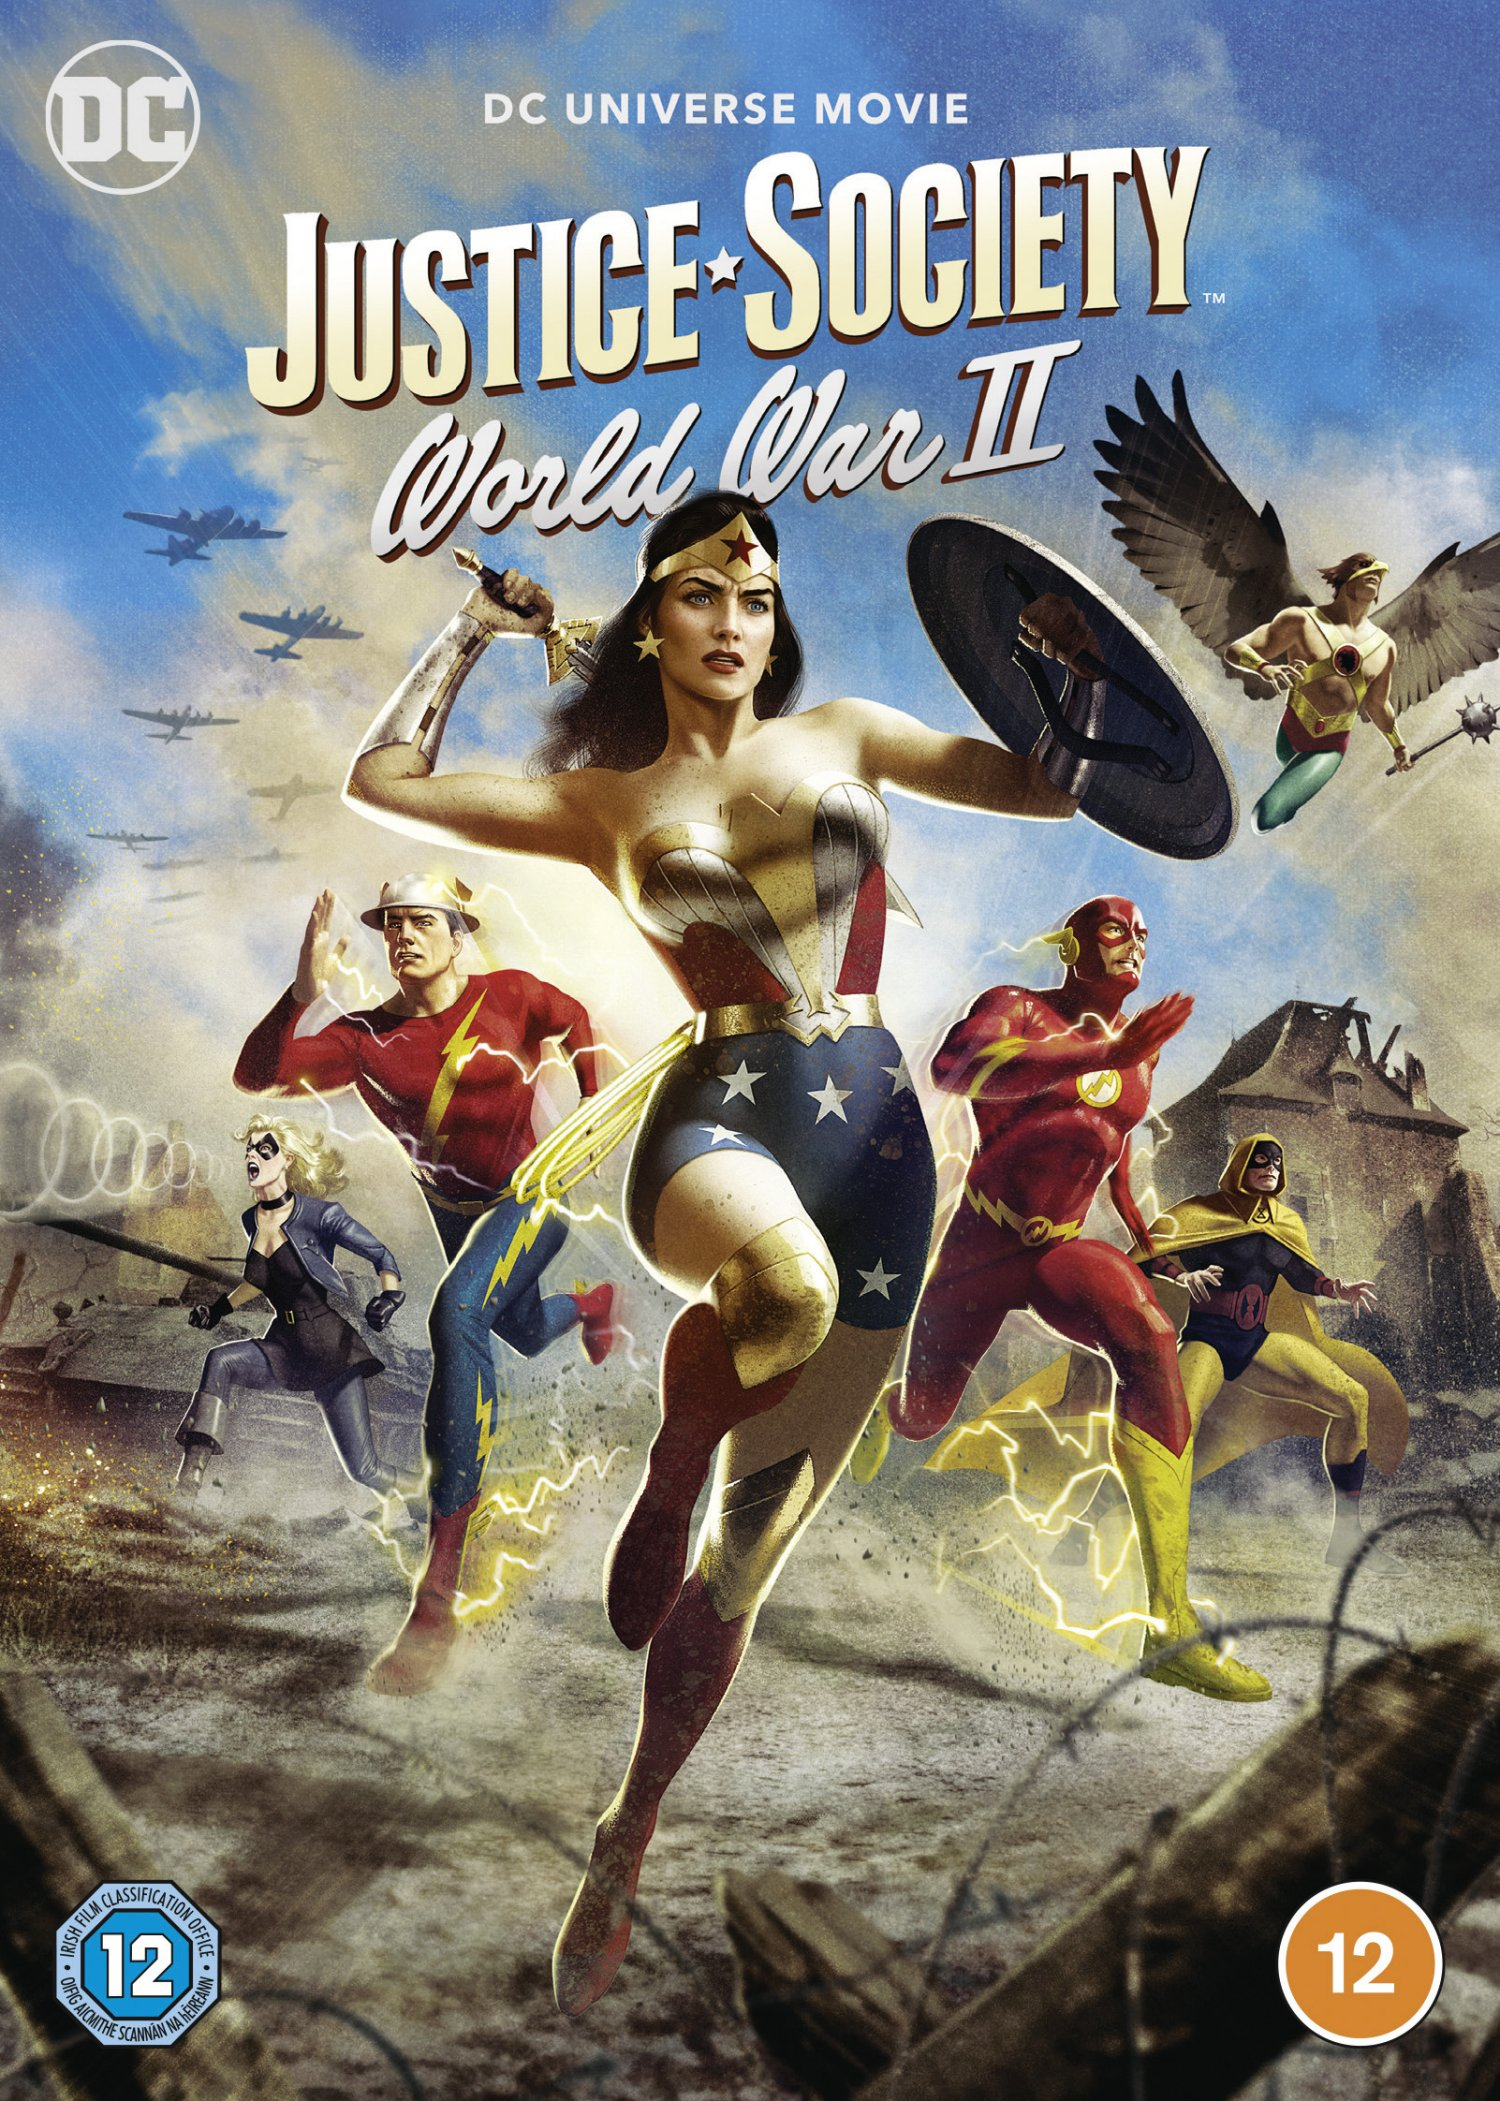 JUSTICE_SOCIETY_2D (1)